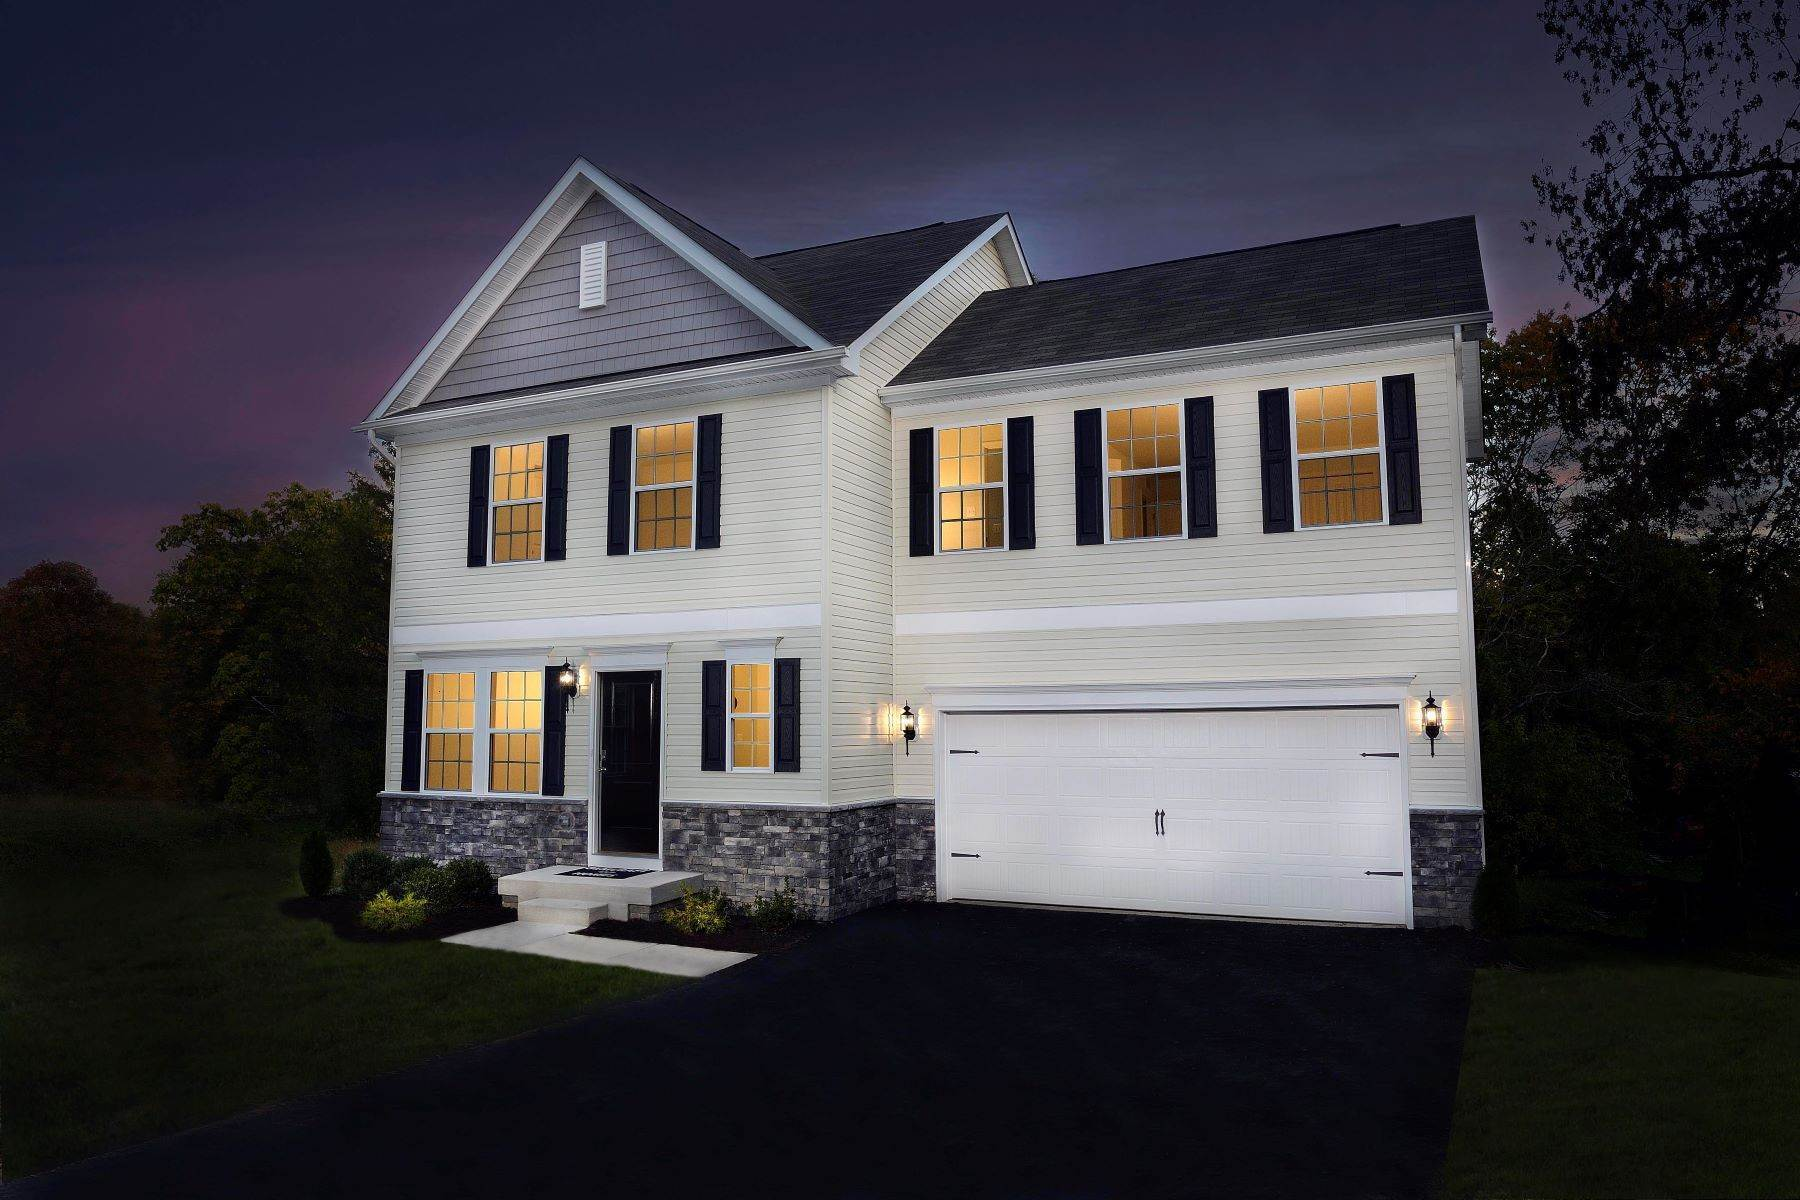 Single Family Homes for Sale at The Pearl Colonial in Captain's Cove Lot 520 Dingy Court Greenbackville, Virginia 23356 United States